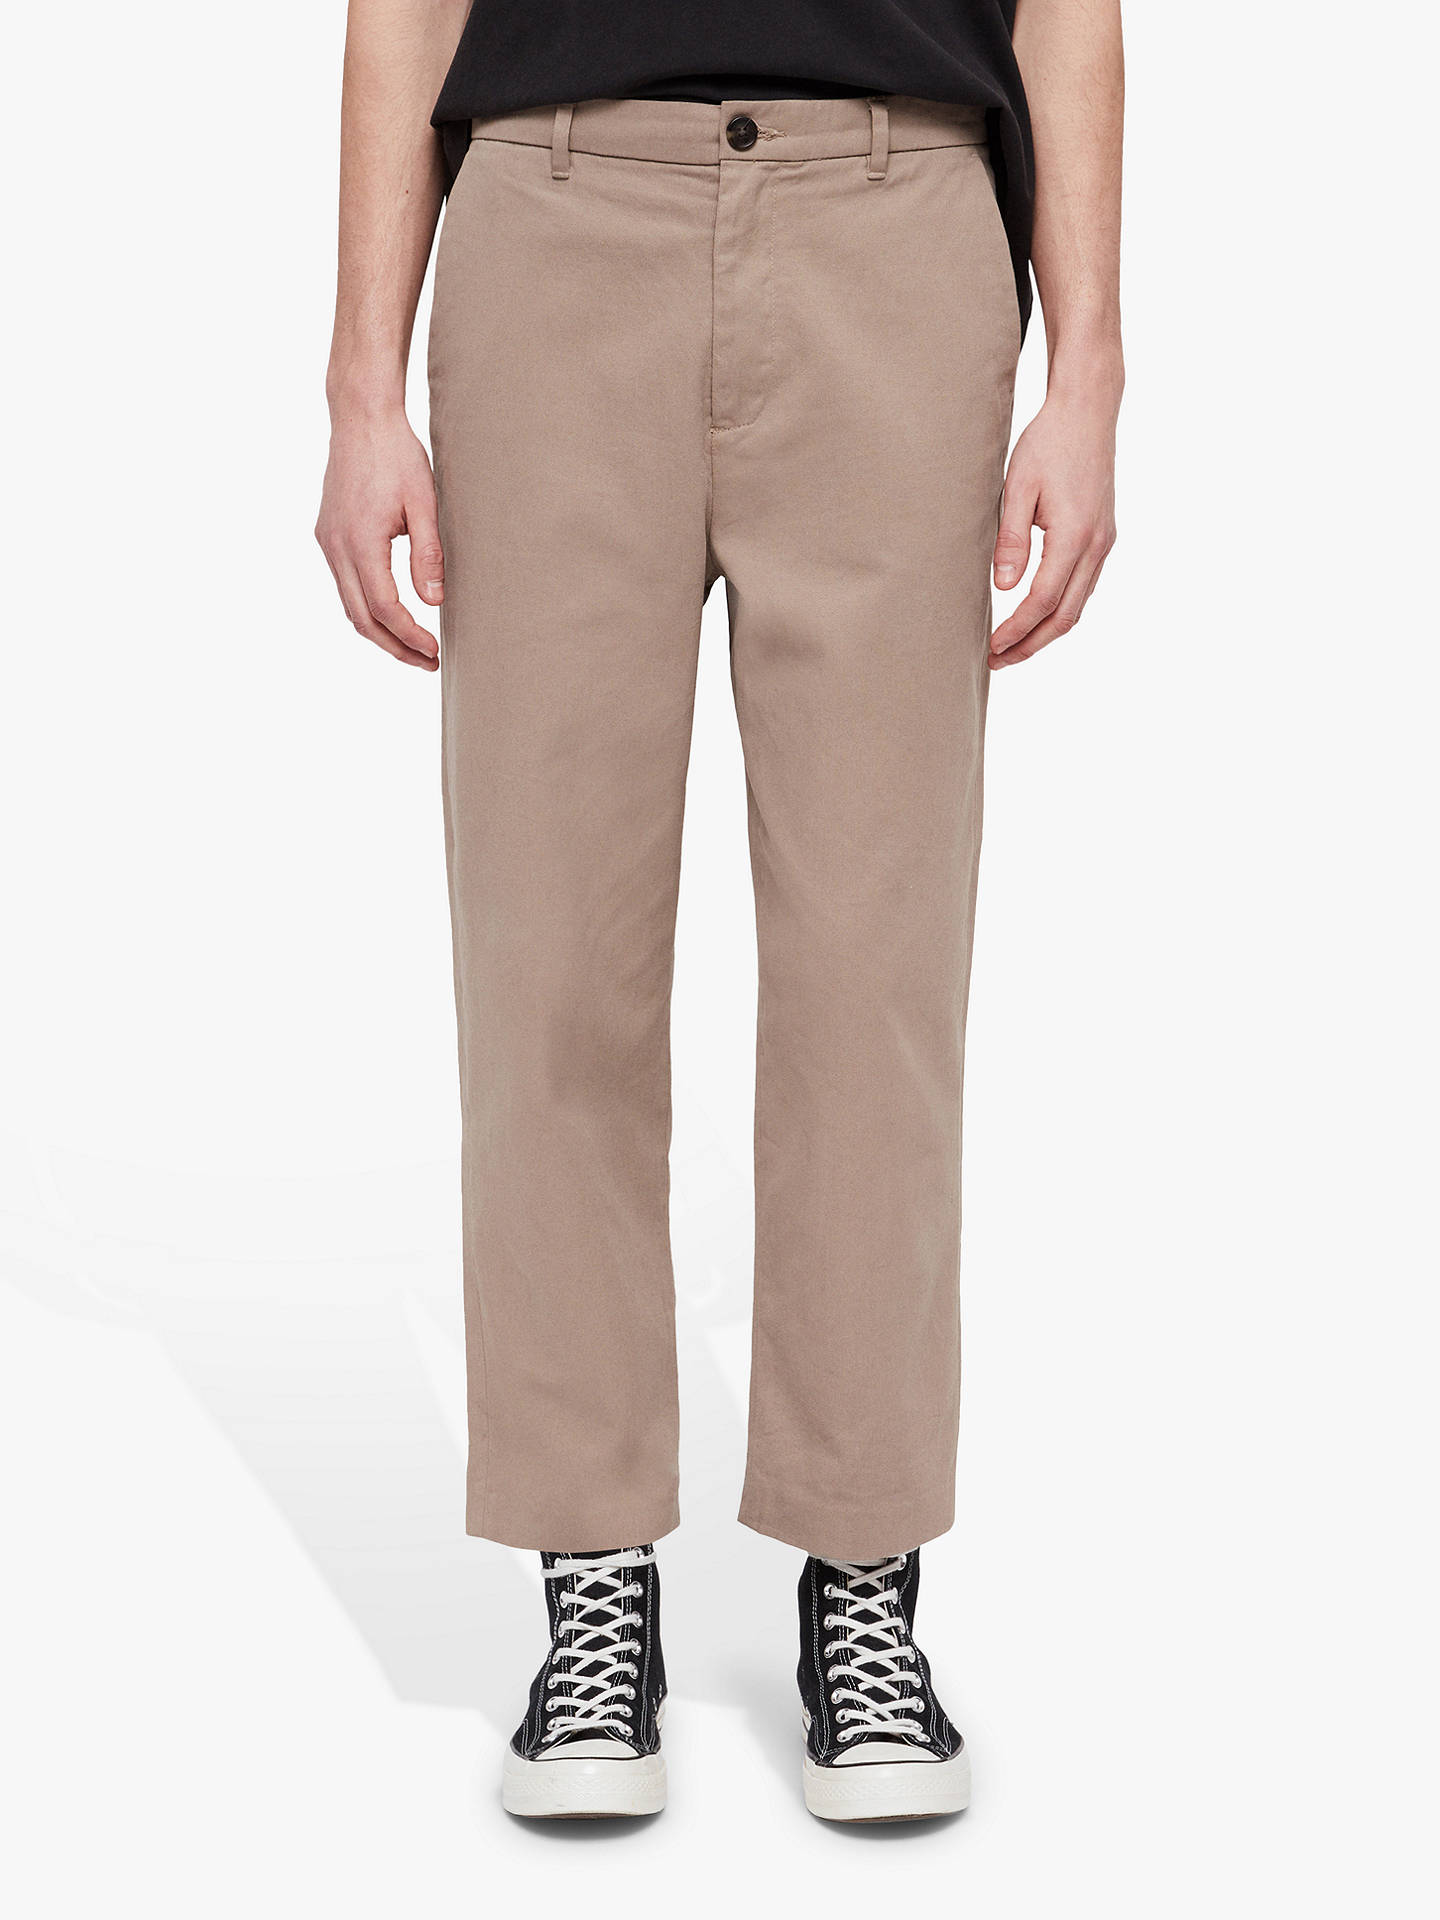 Buy AllSaints Muro Slim Fit Classic Chinos, Brown Camel, 28R Online at johnlewis.com